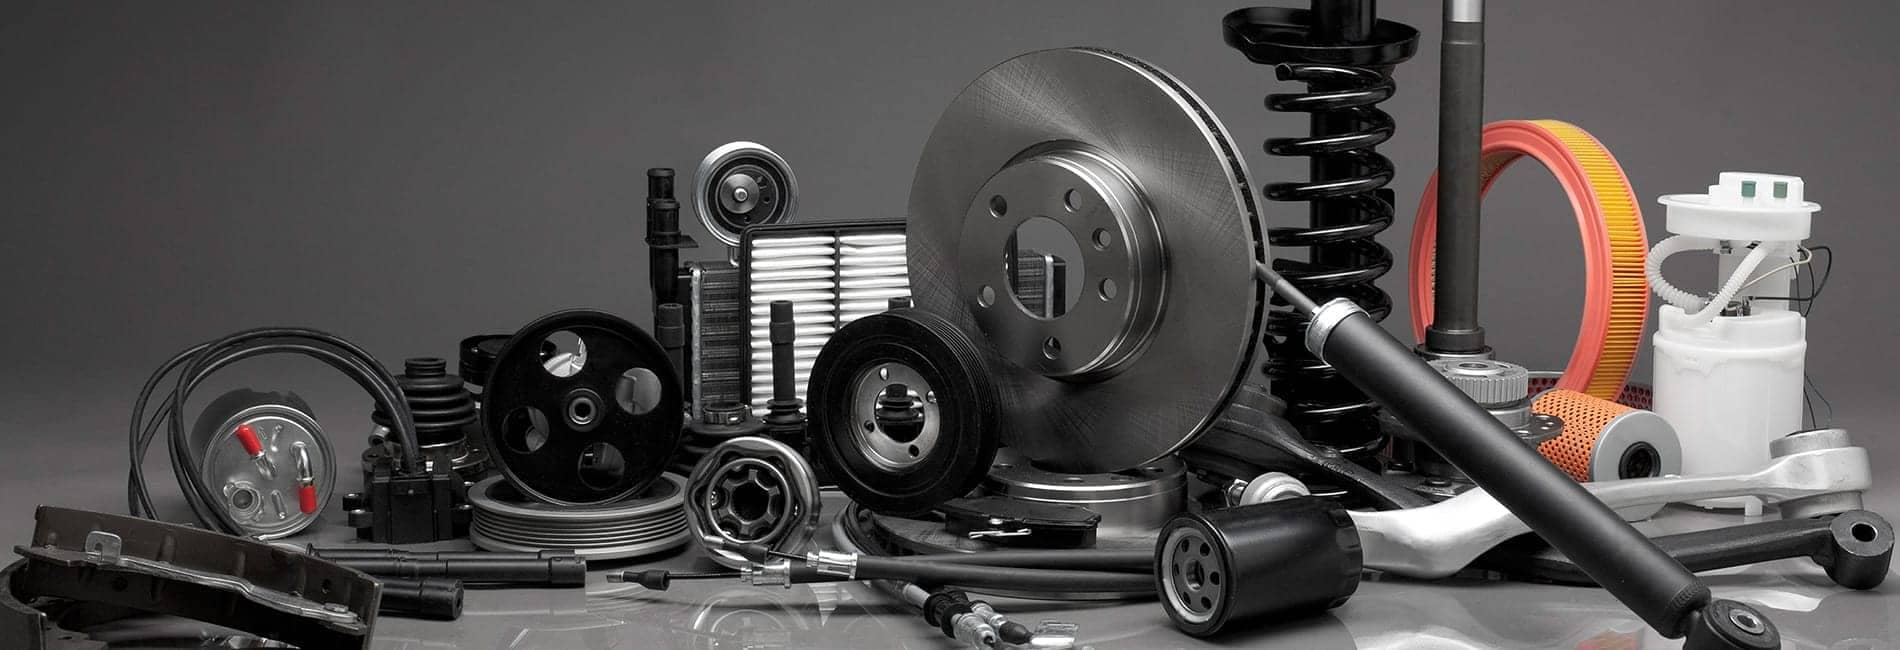 car parts on a table